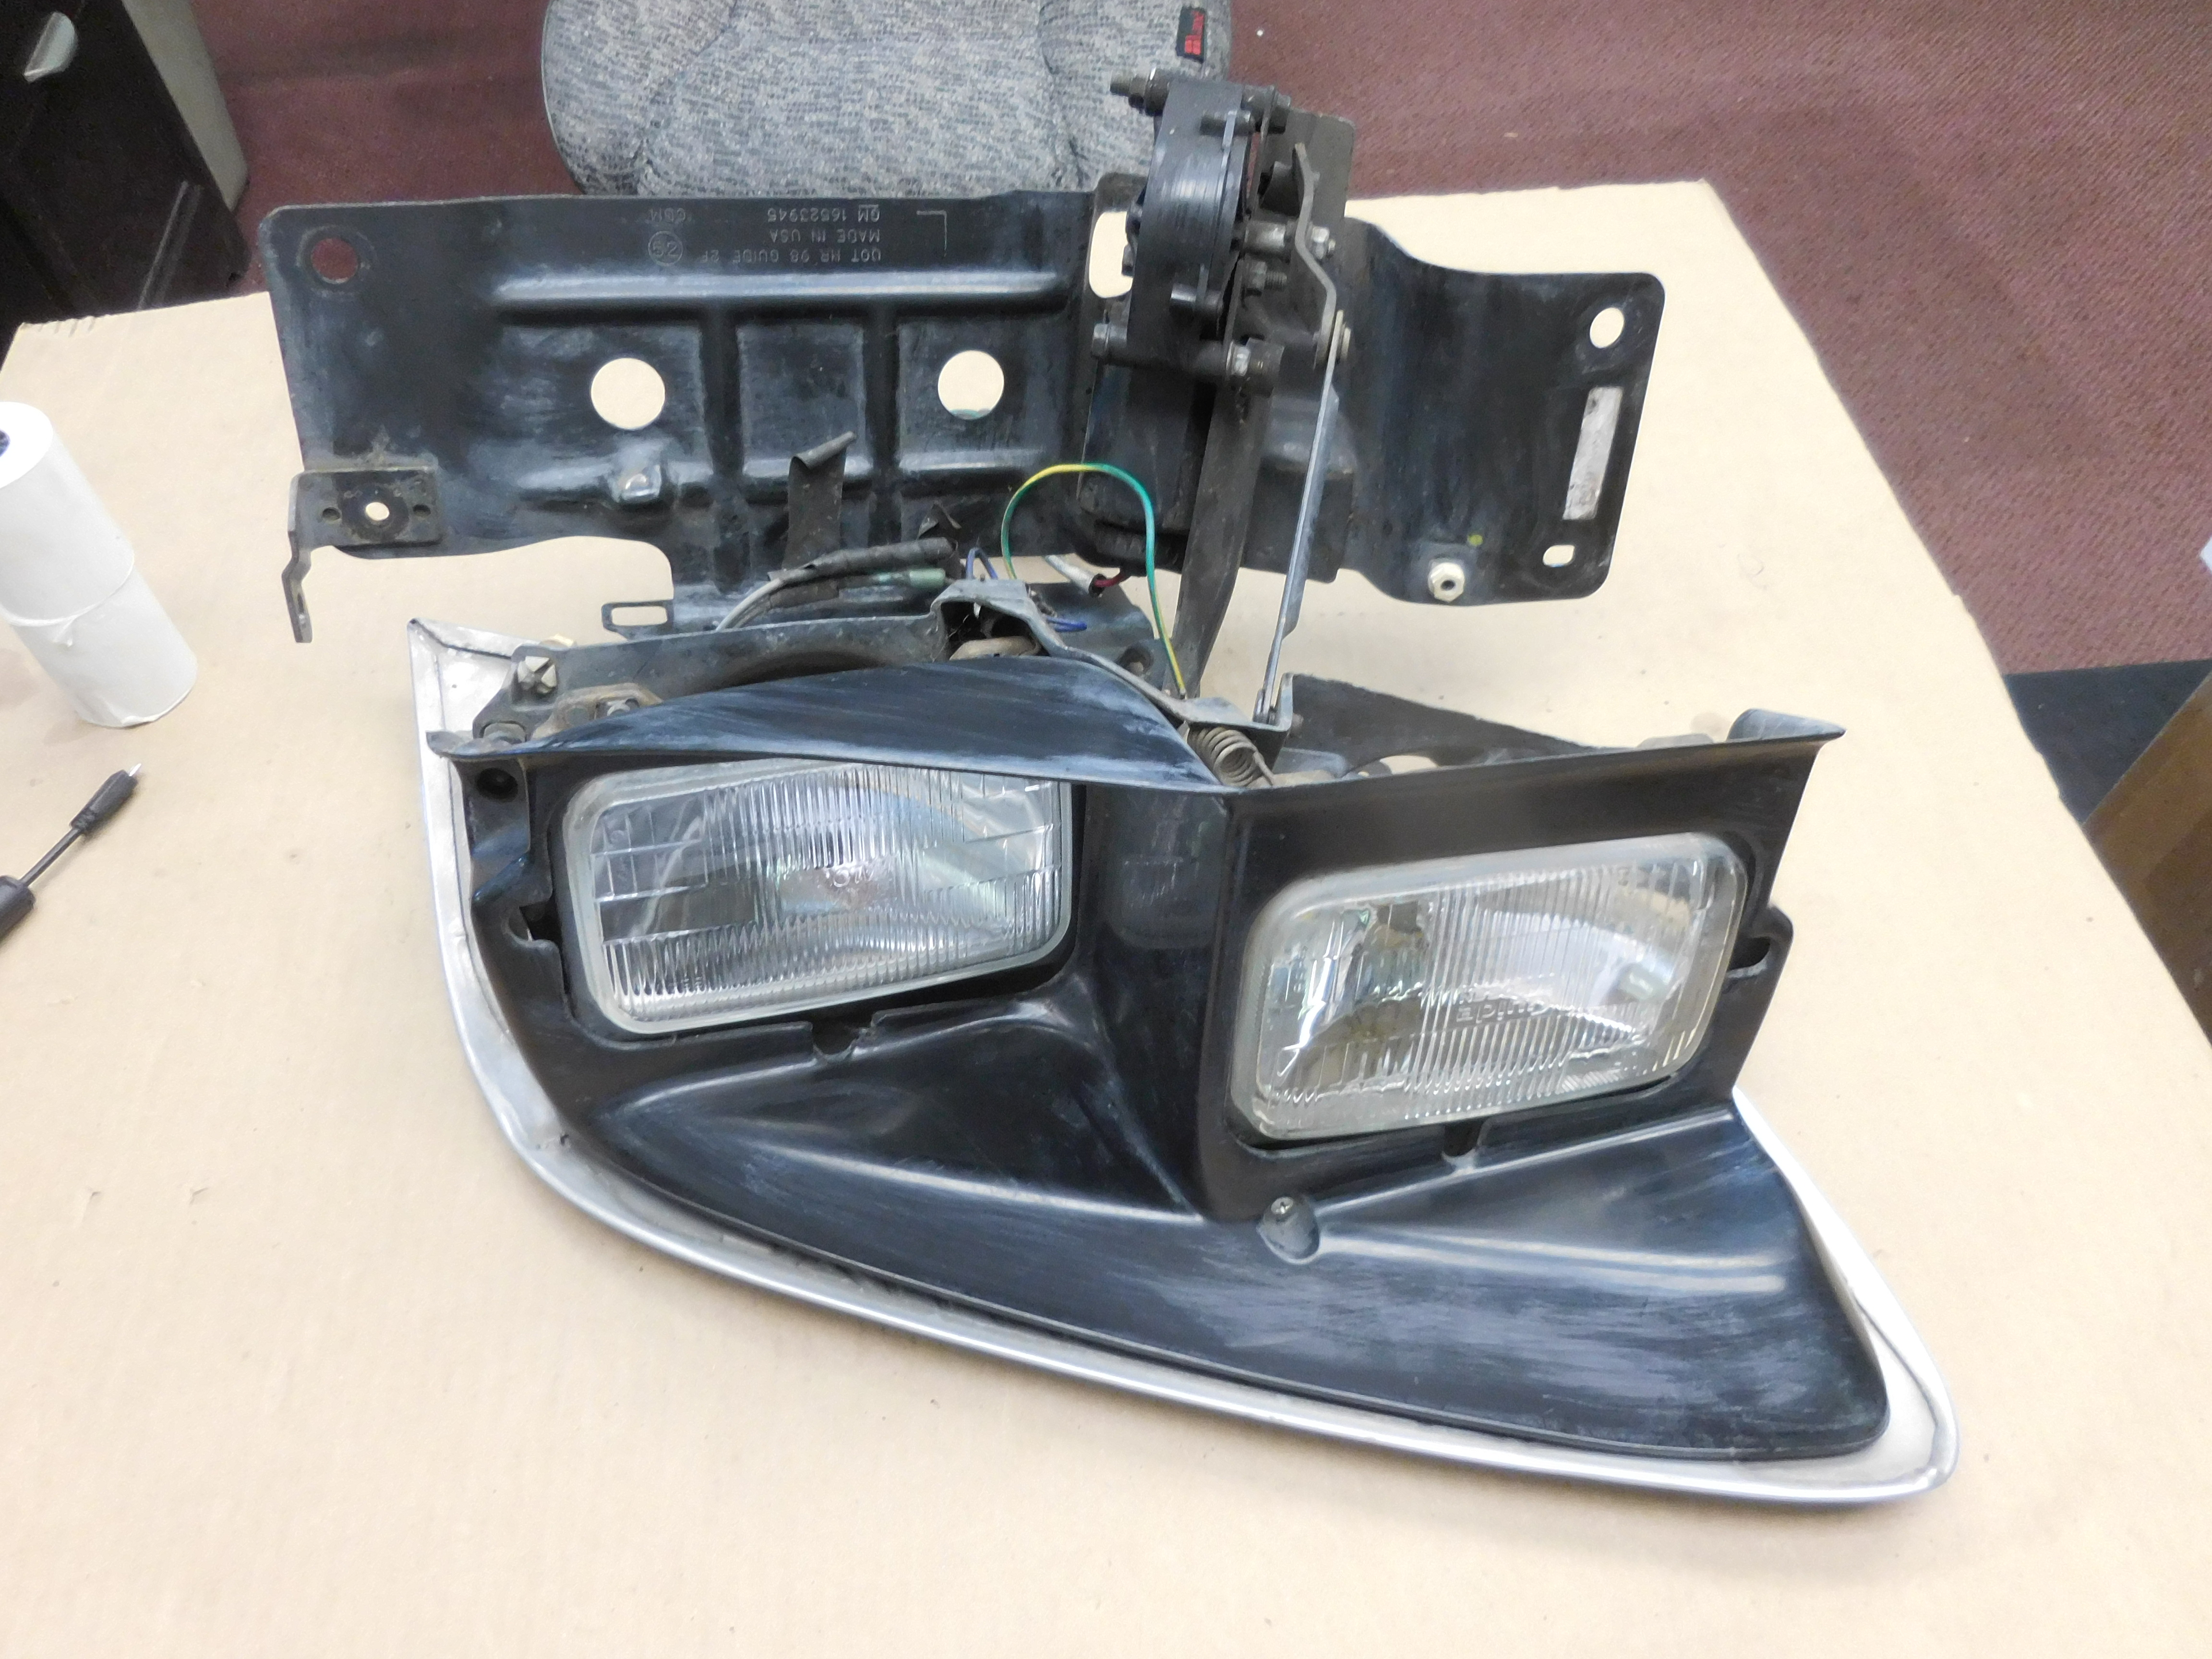 1998,1999,2000,2001,2002, Pontiac, Trans Am, Firebird, Left, Headlight, Assembly,